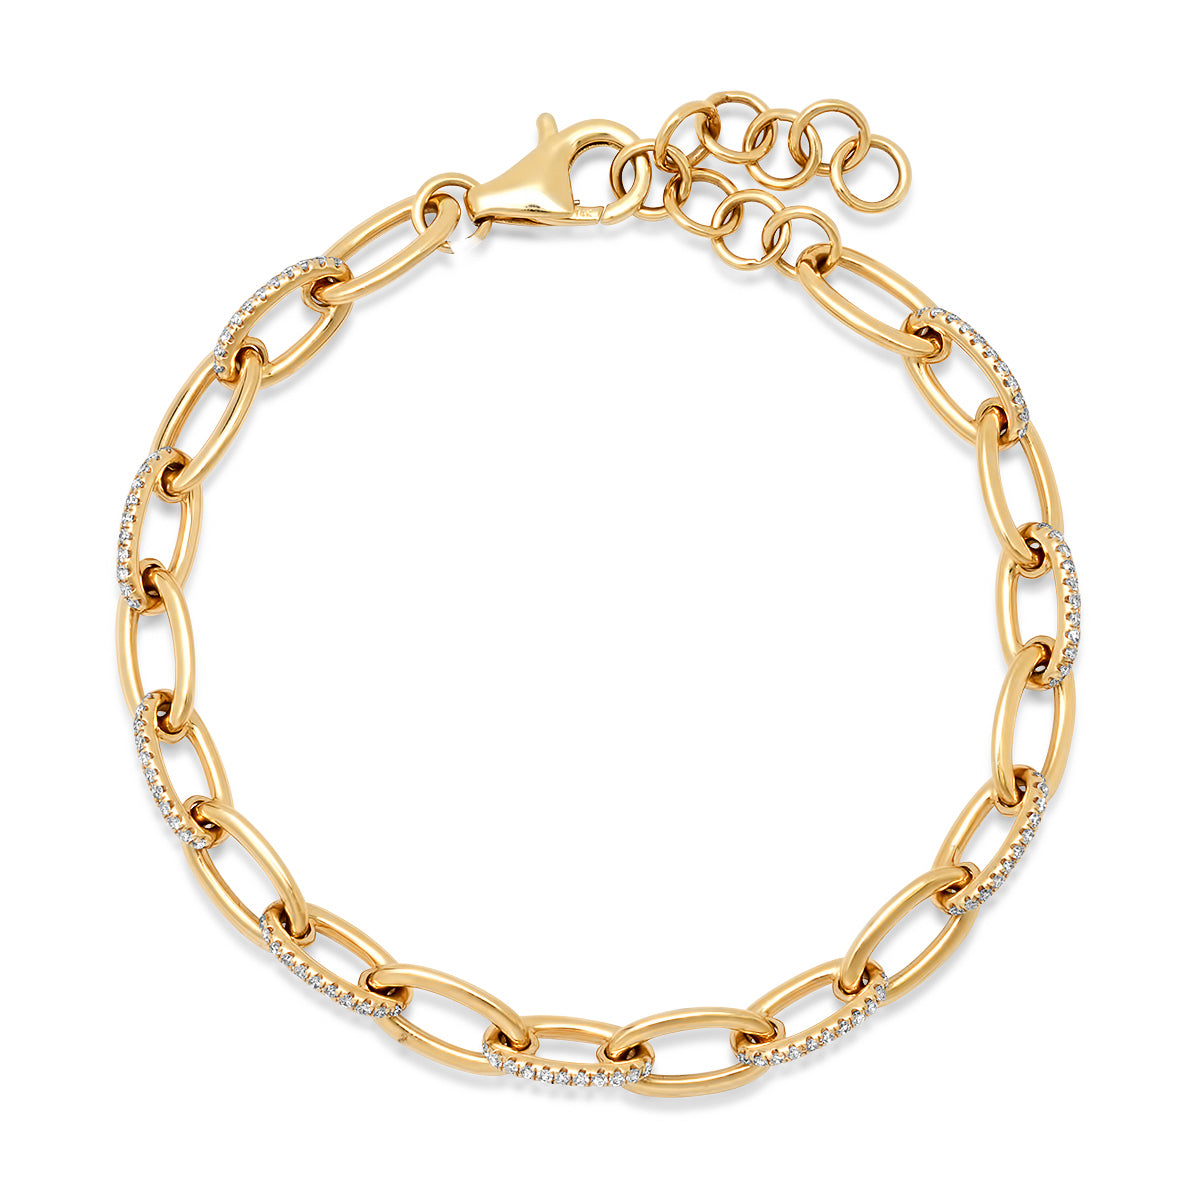 Gold & Diamond Link Chain Bracelet